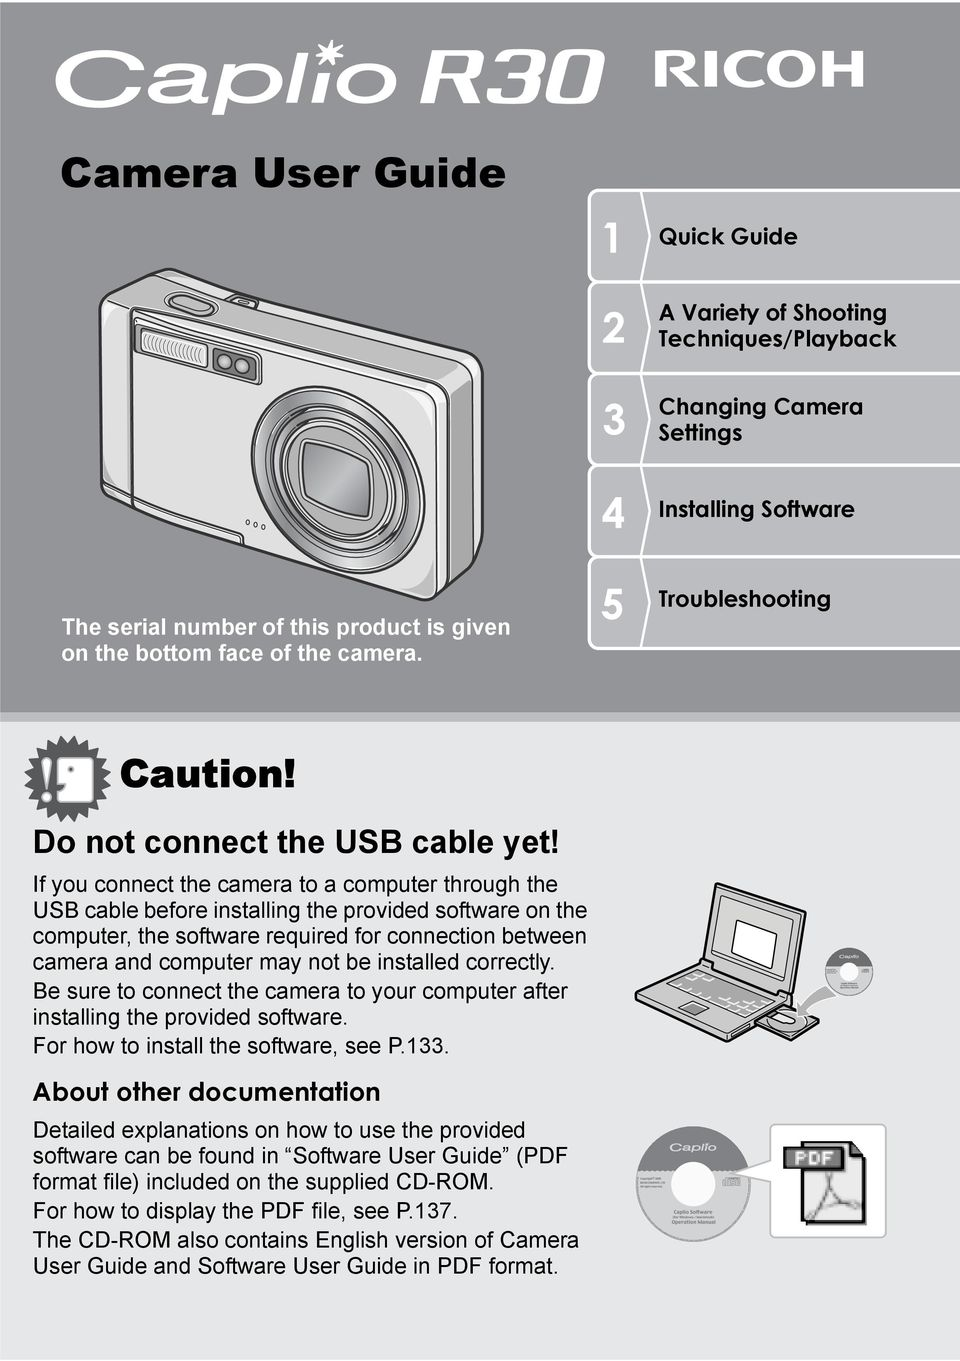 If you connect the camera to a computer through the USB cable before installing the provided software on the computer, the software required for connection between camera and computer may not be